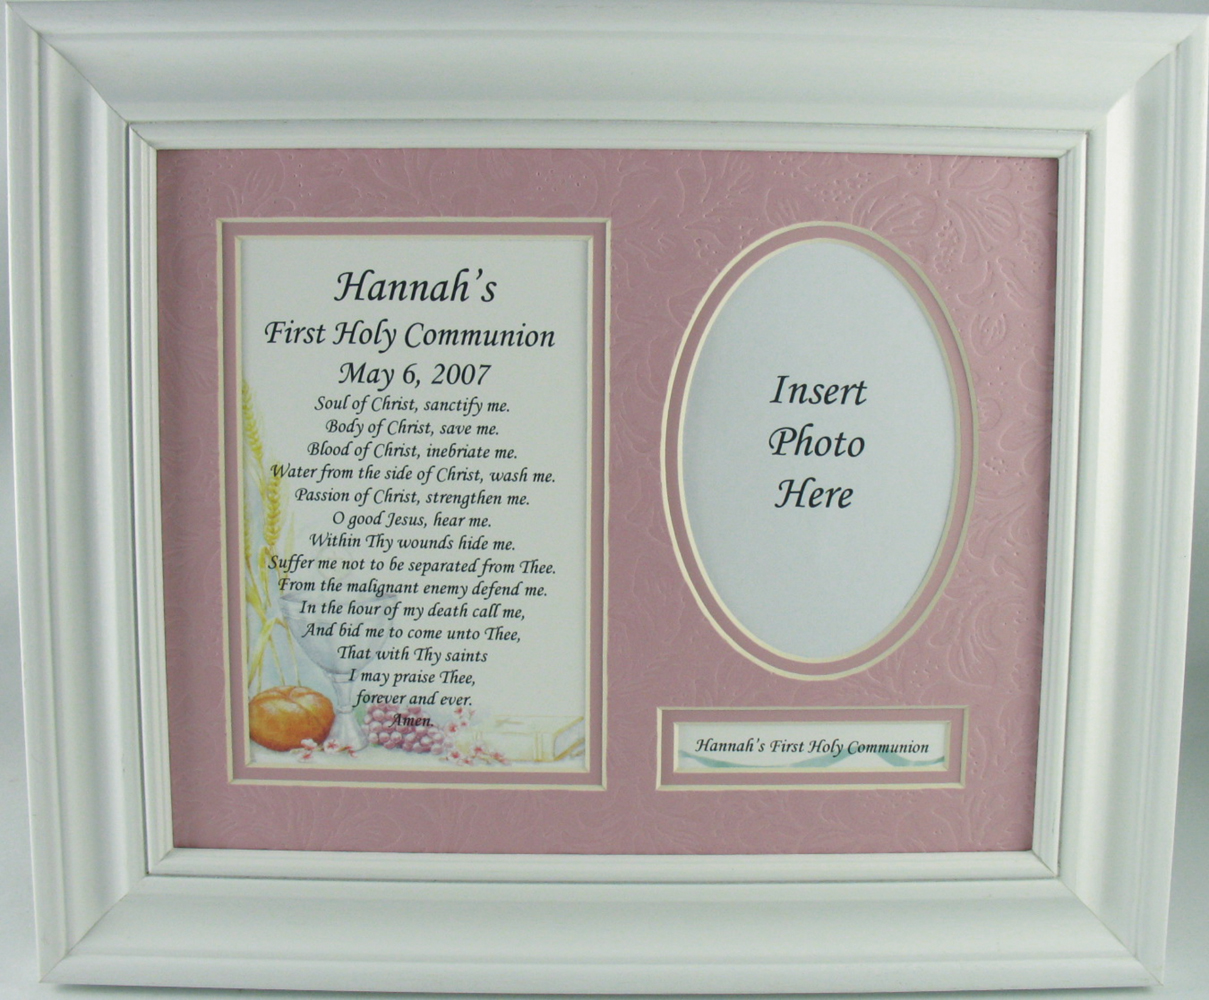 Frames photo albums please specify childs first name and communion date when ordering special ordernon returnable please allow 2 3 weeks for delivery white wood frame jeuxipadfo Images